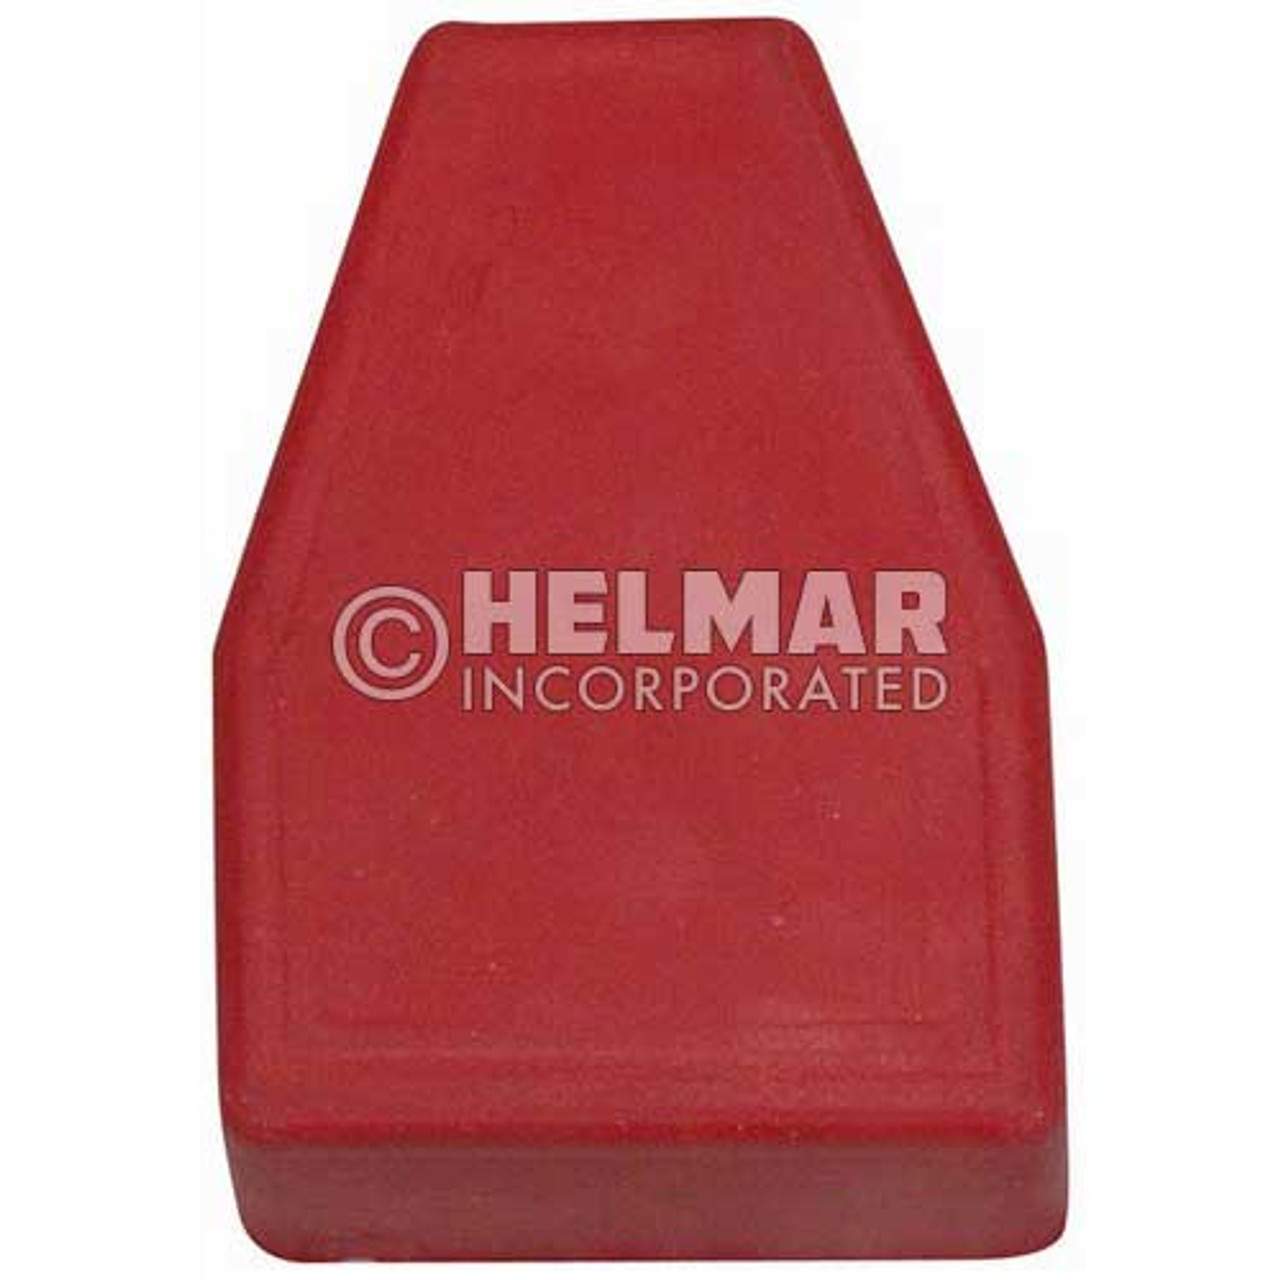 06101 Terminal Boots Straight, Red, 4-6 Gauge